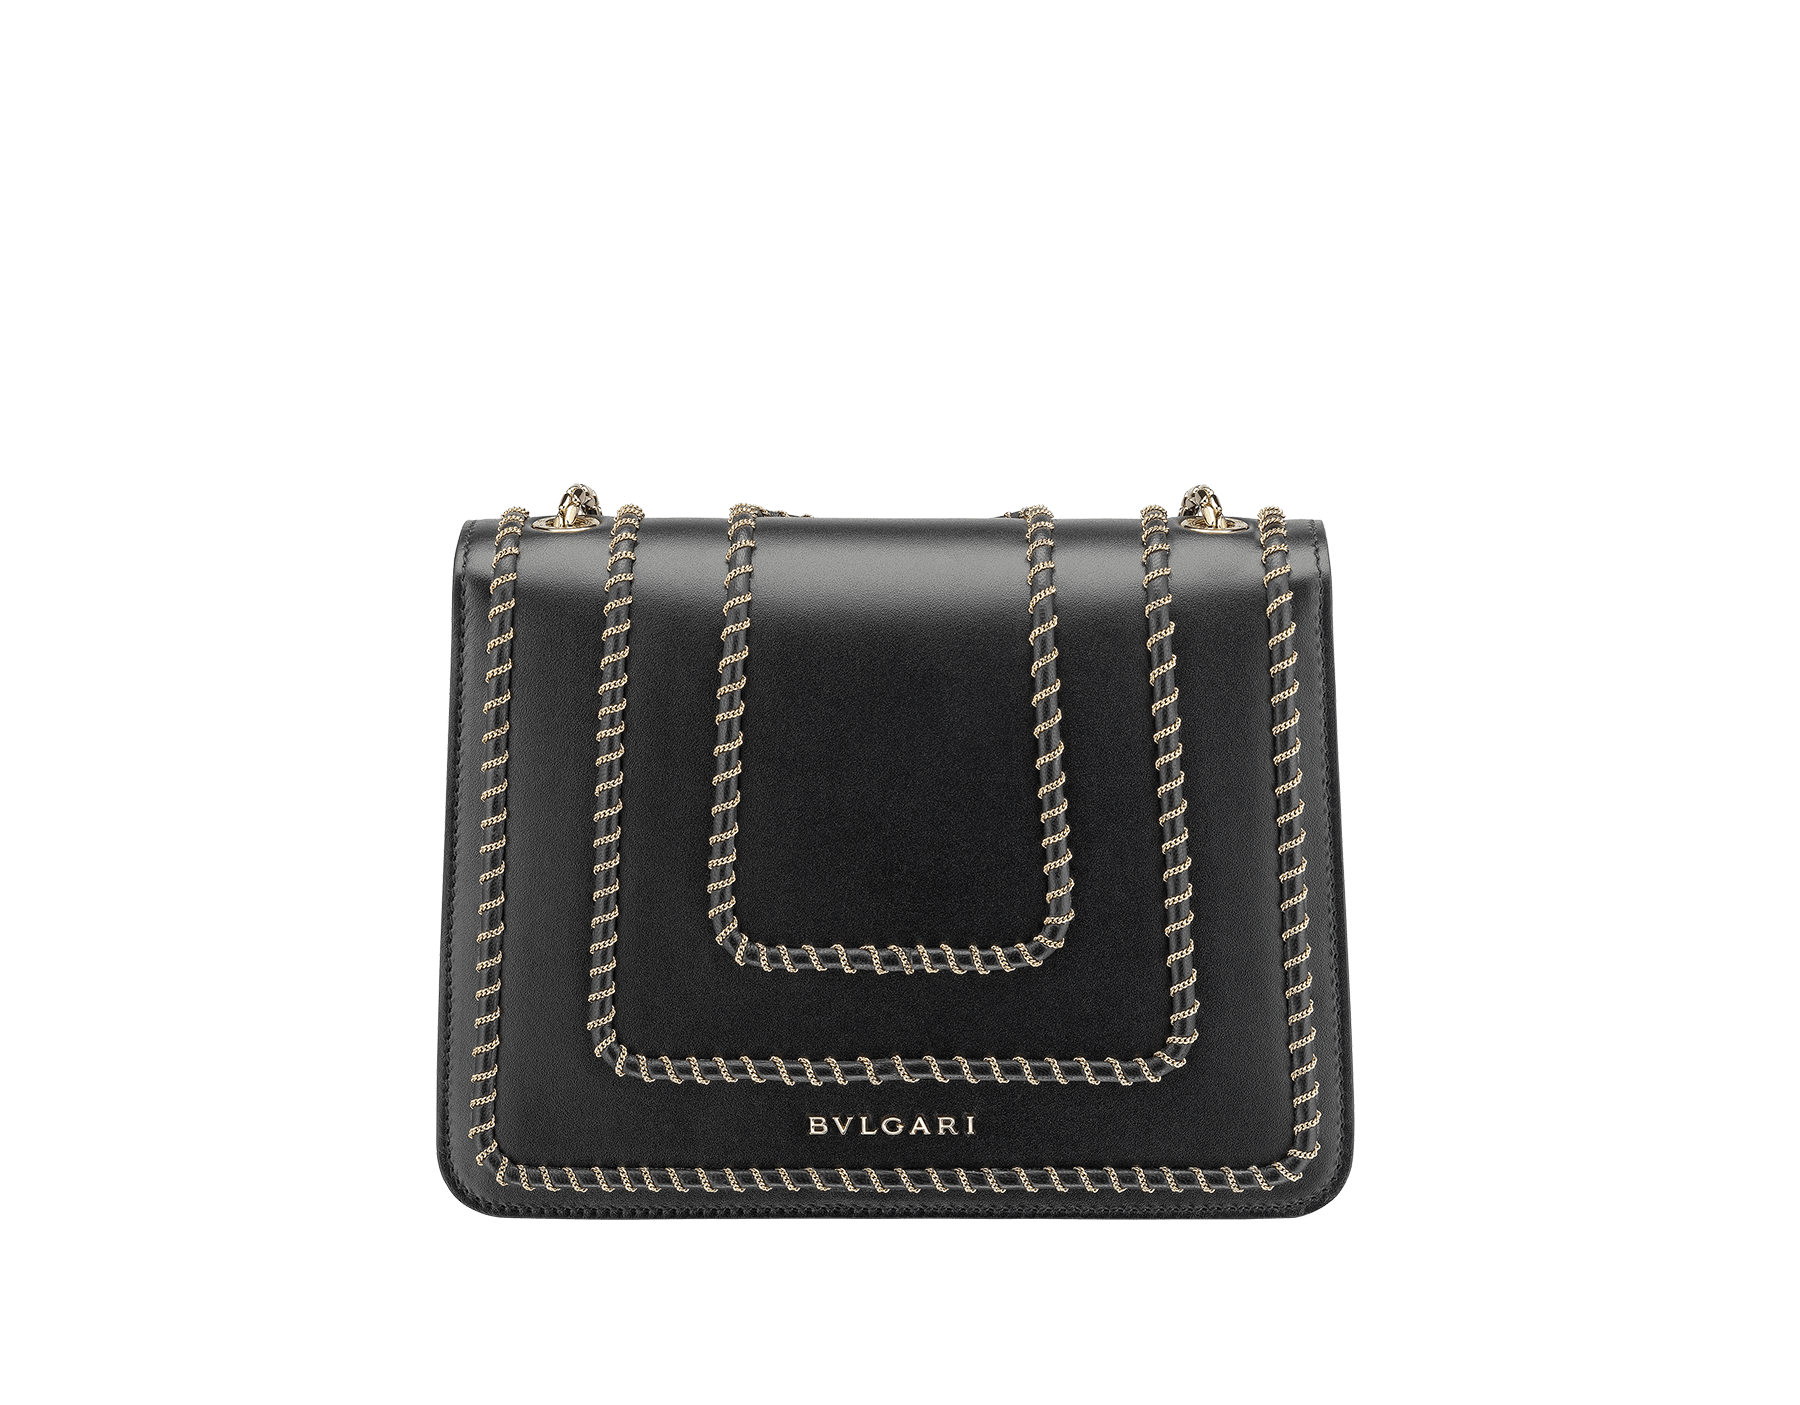 "Borsa a tracolla ""Serpenti Forever"" in vitello nero con motivo Woven Chain. Iconica chiusura Serpenti in ottone placcato oro chiaro e smalto lucido nero con occhi in onice nera. 422-WC image 3"